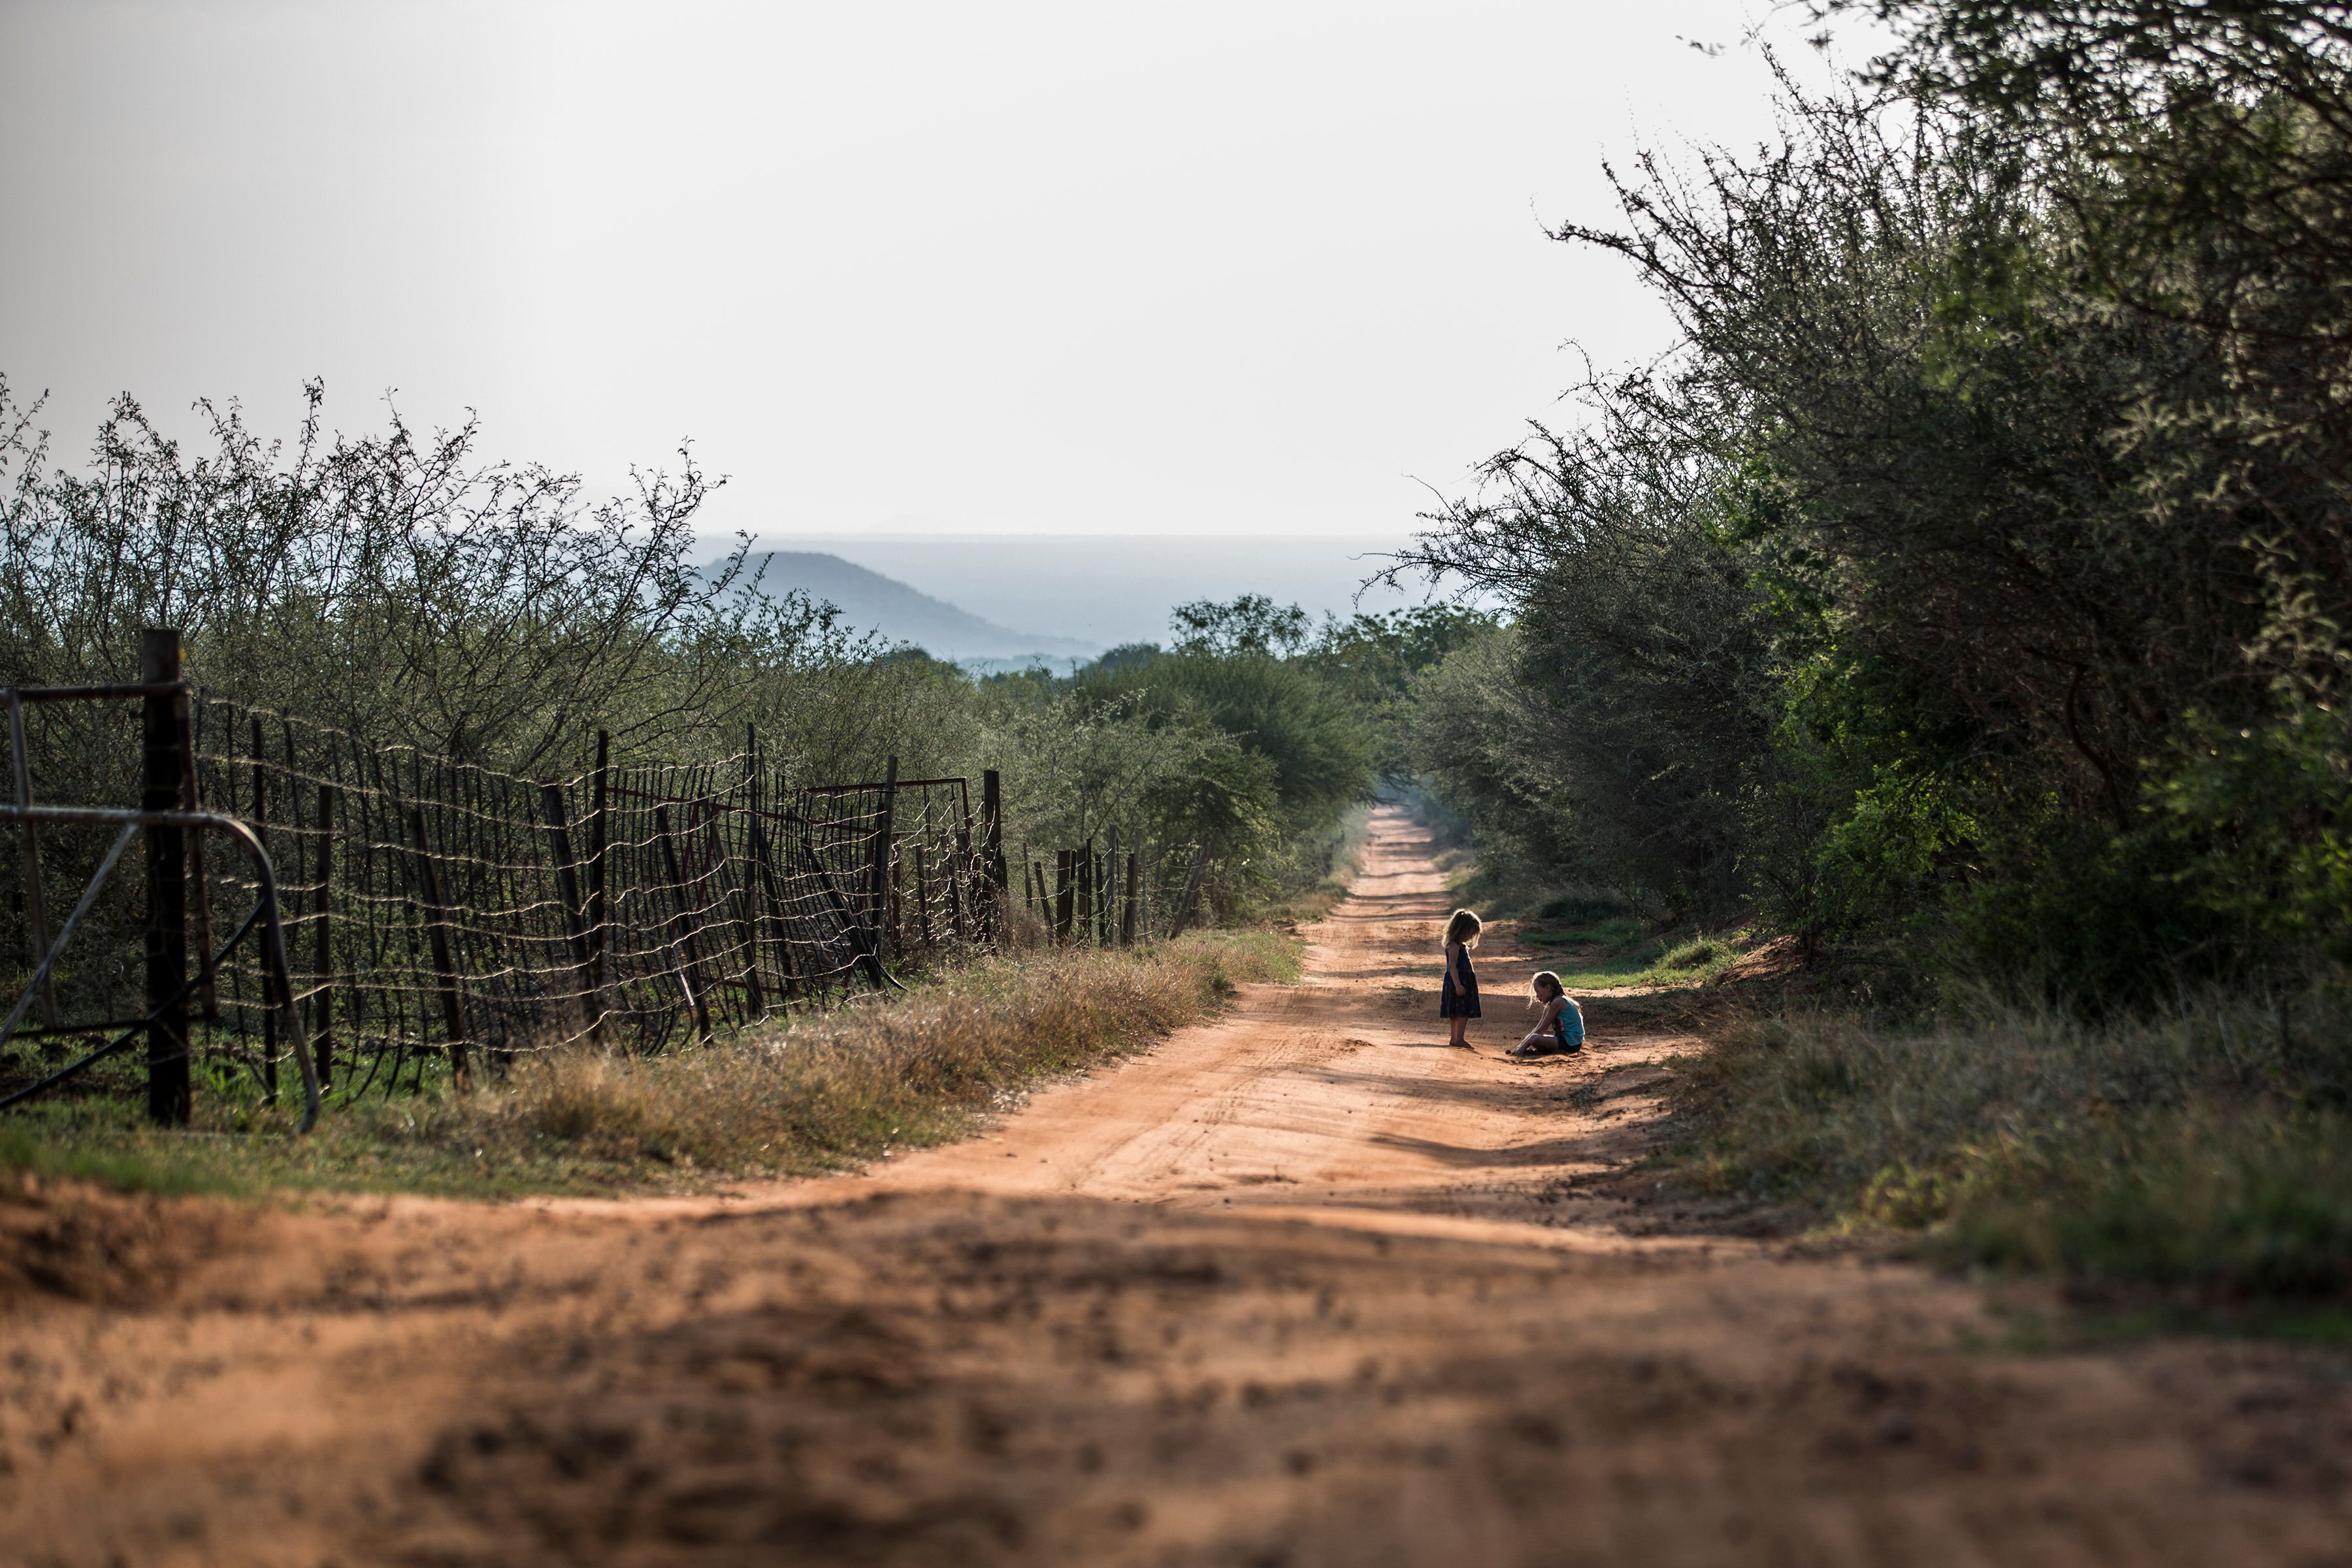 OCT 2017: Two children play on a farm in Limpopo province, South Africa.